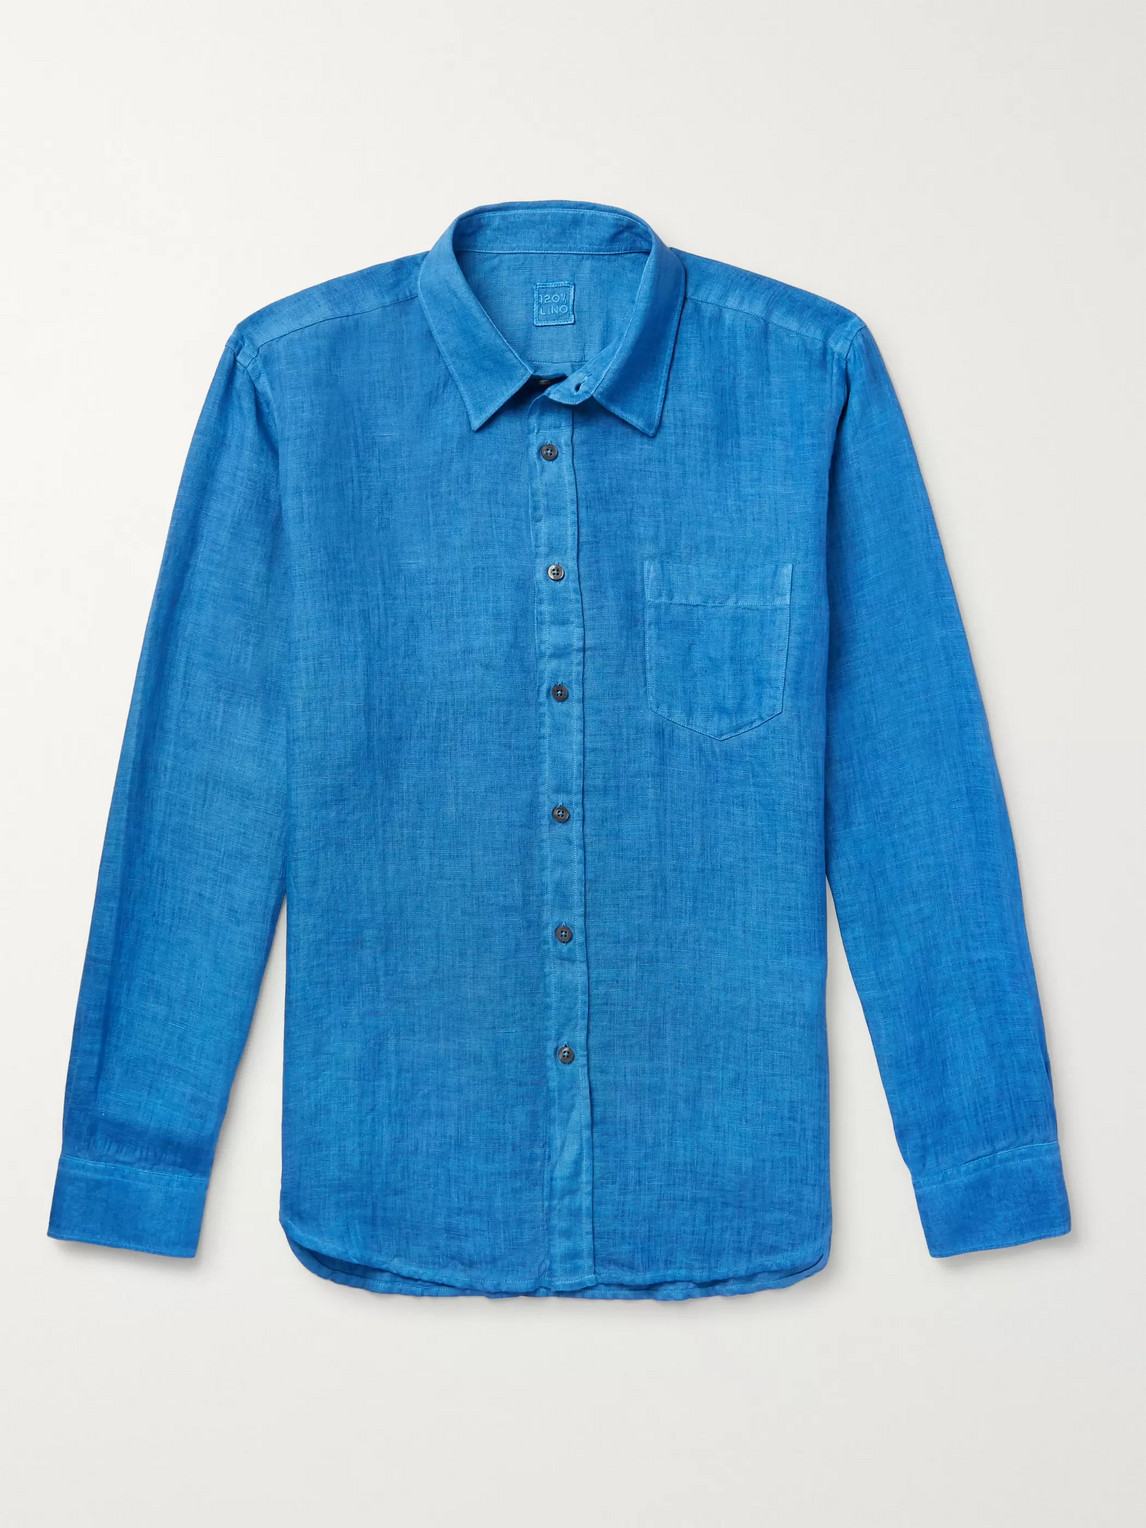 120% Linen Shirt In Blue